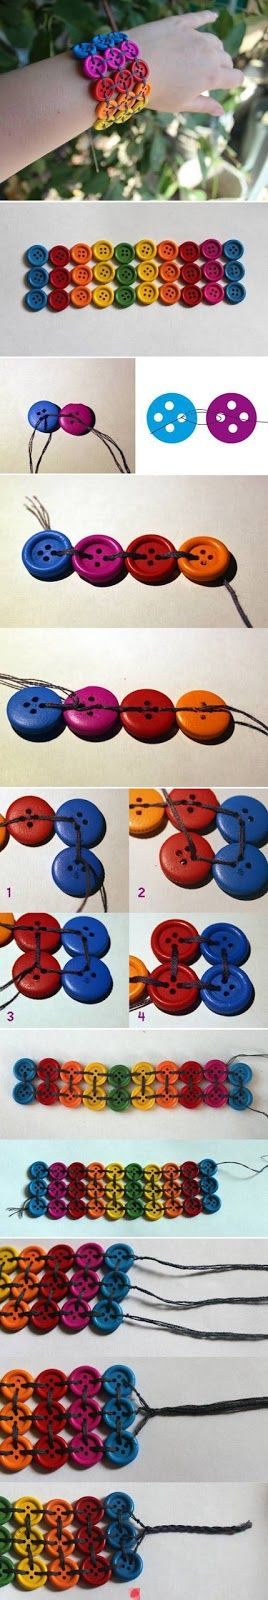 How To Make Bracelet With Buttons?